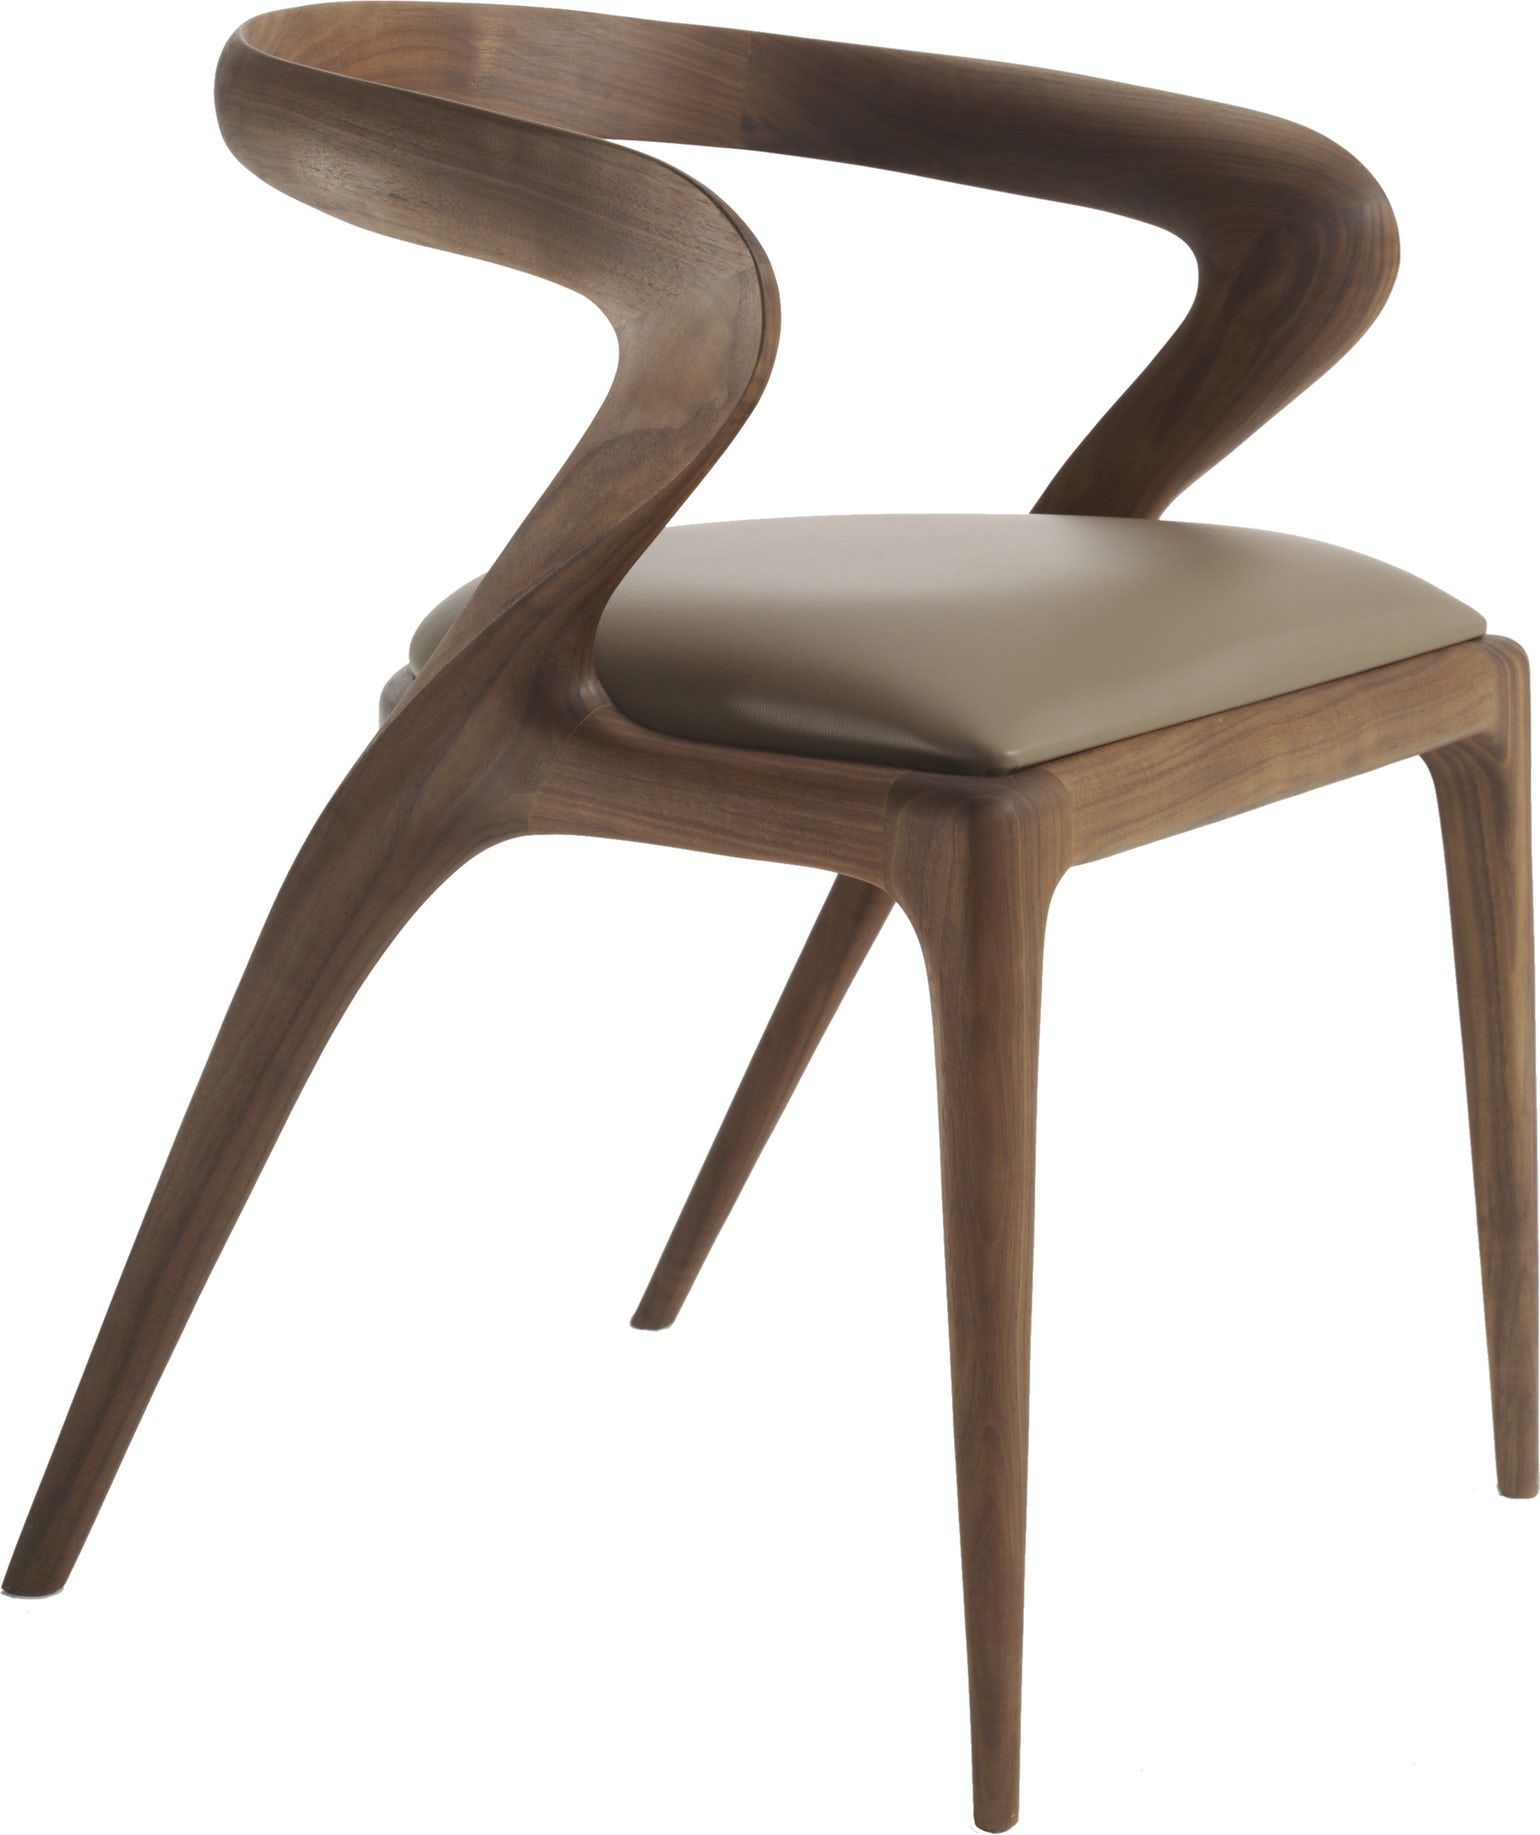 Salma Dining Chair By Agrippa Contemporary Transitional